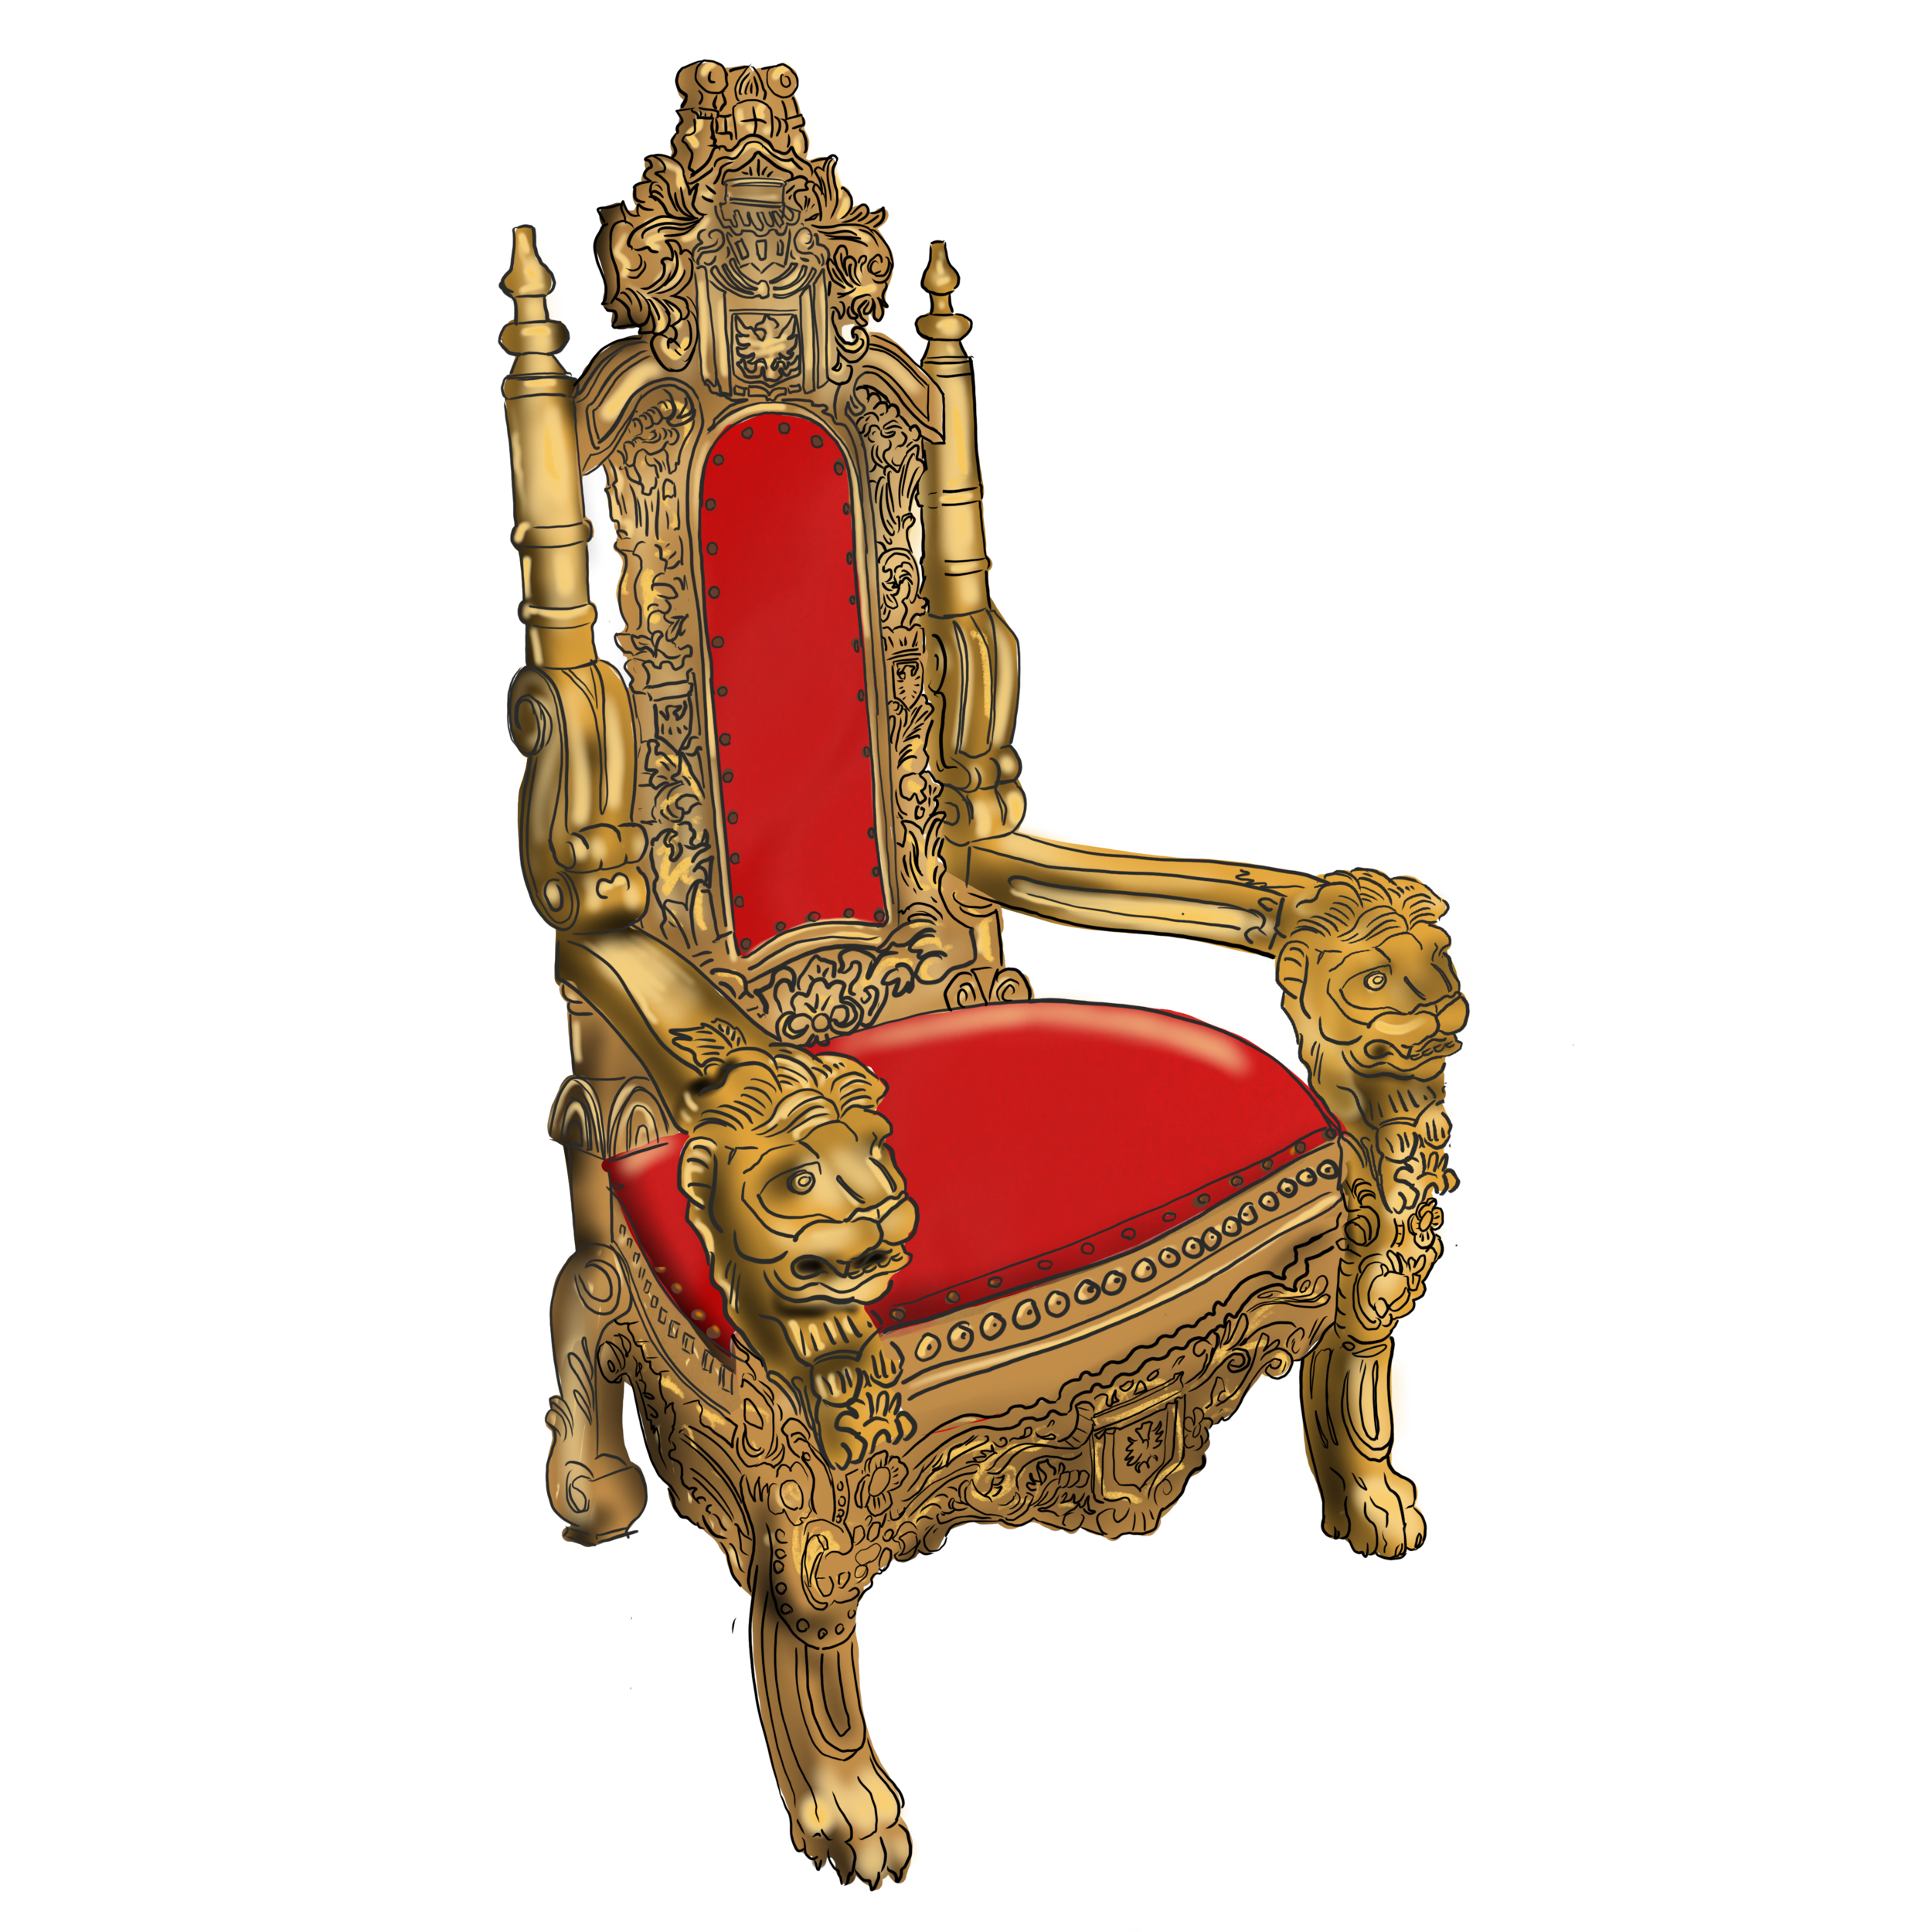 1cpm_098_throne.png